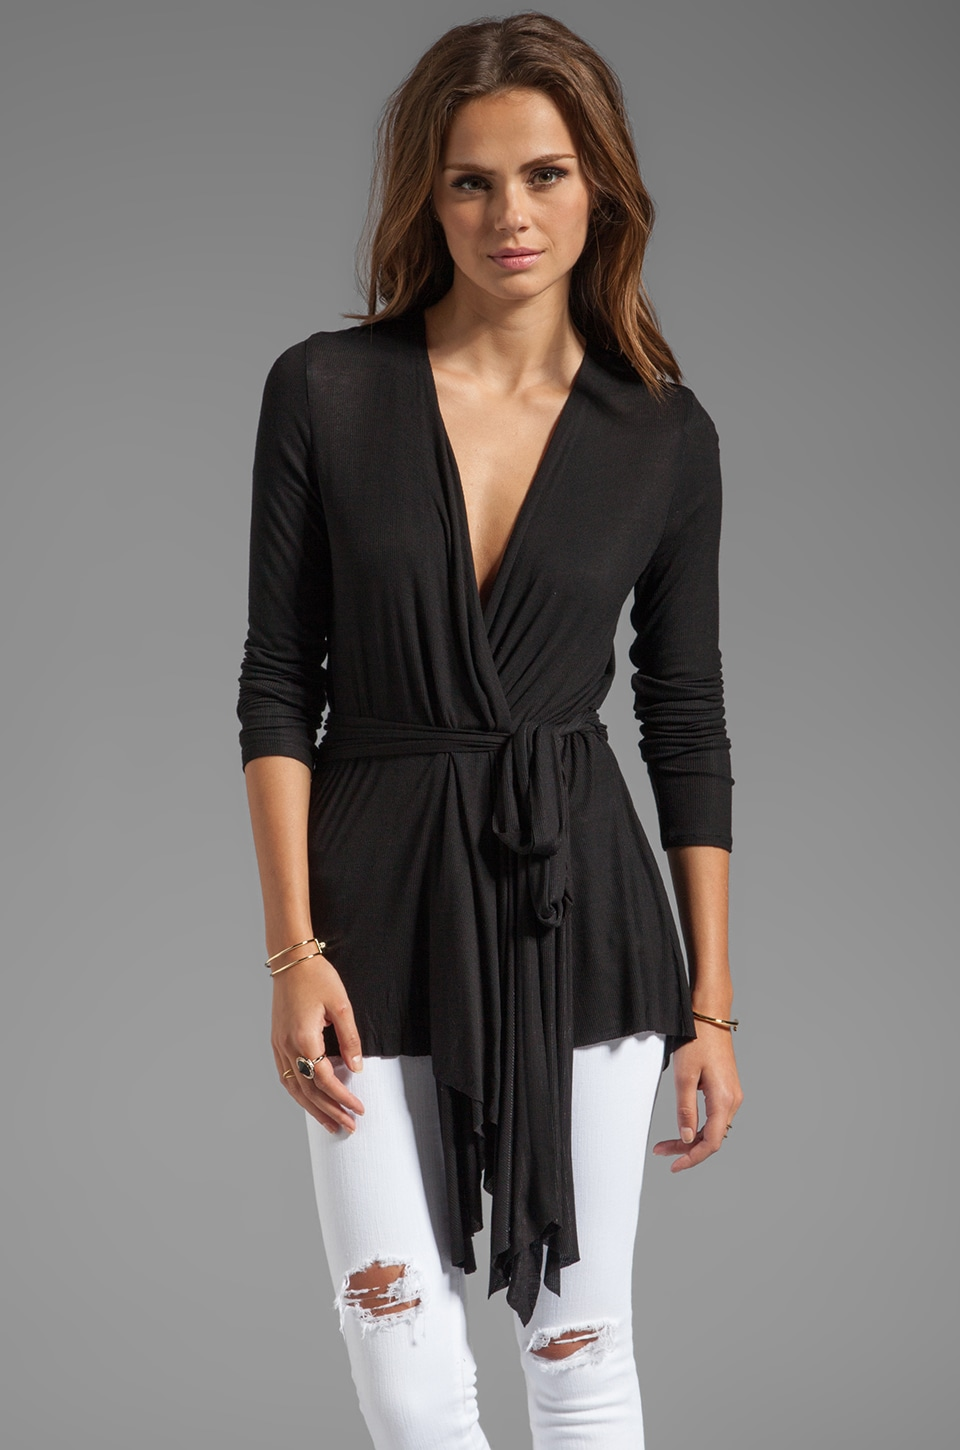 Rachel Pally Rib Rollo Top in Black